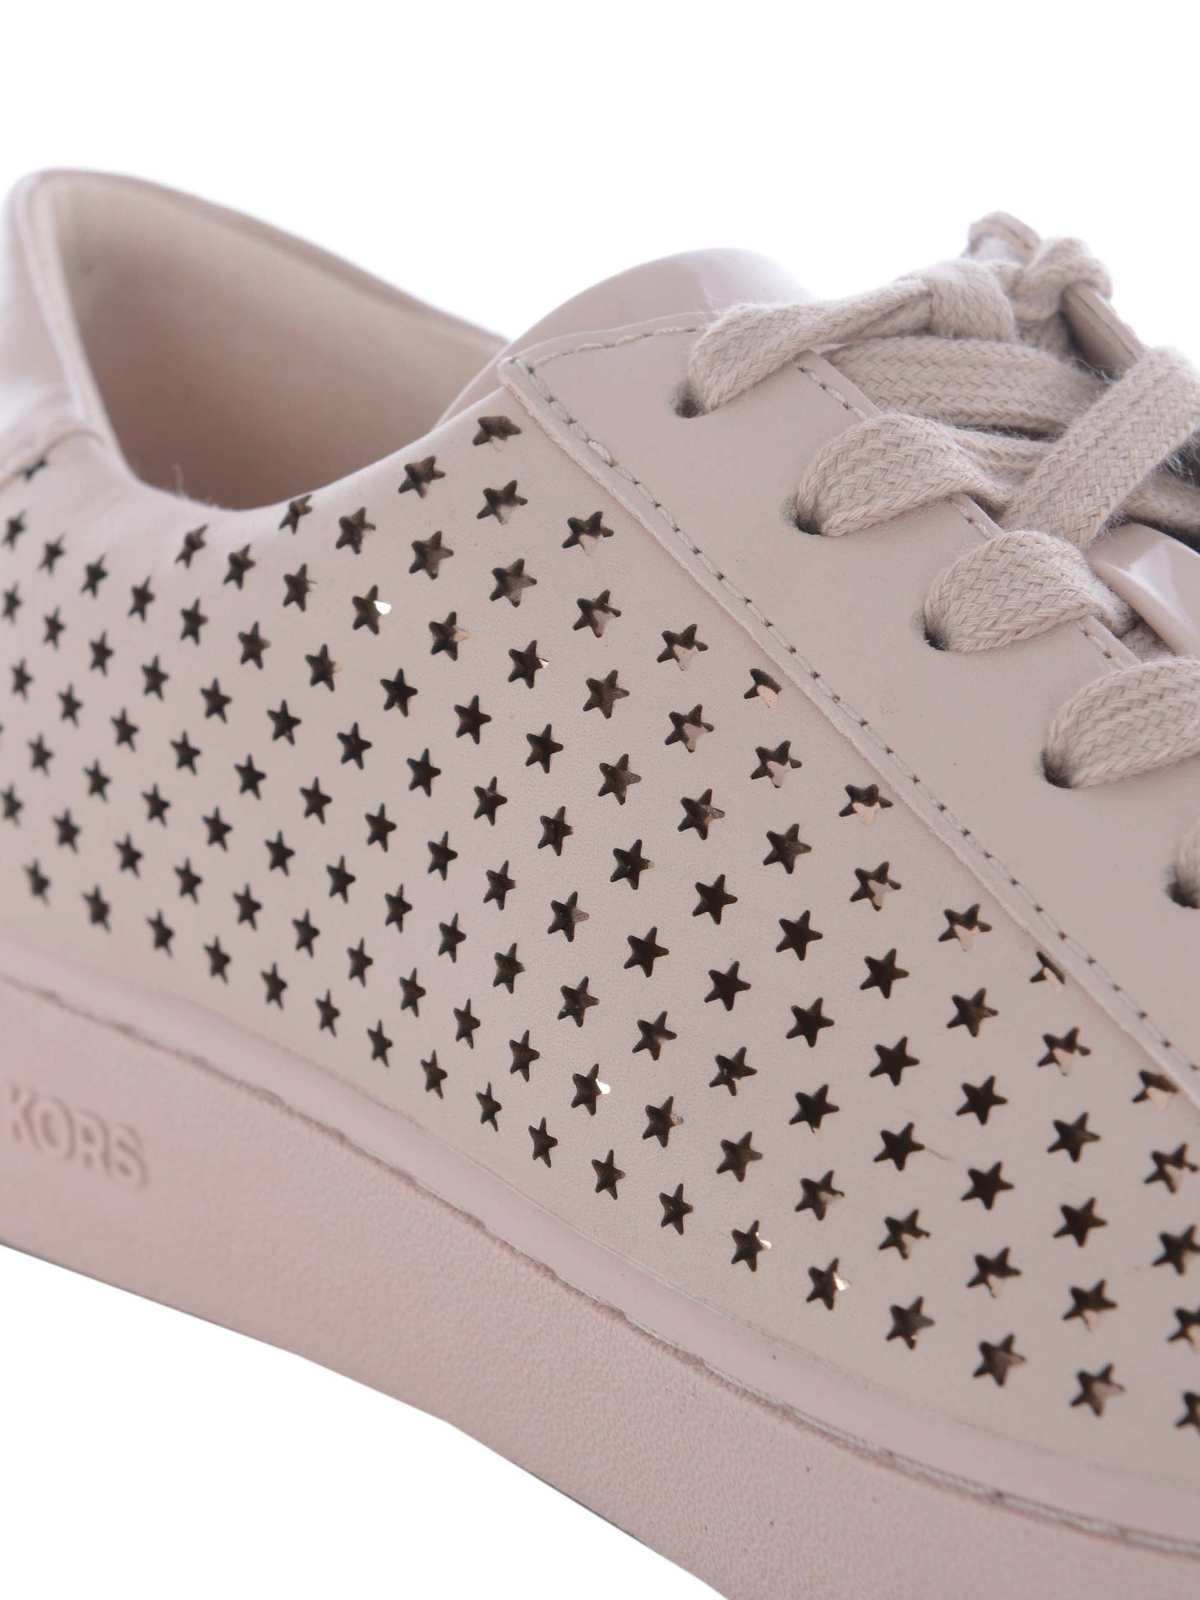 3e86ec3c7865 iKRIX MICHAEL KORS  trainers - Irving cut-out stars pink sneakers